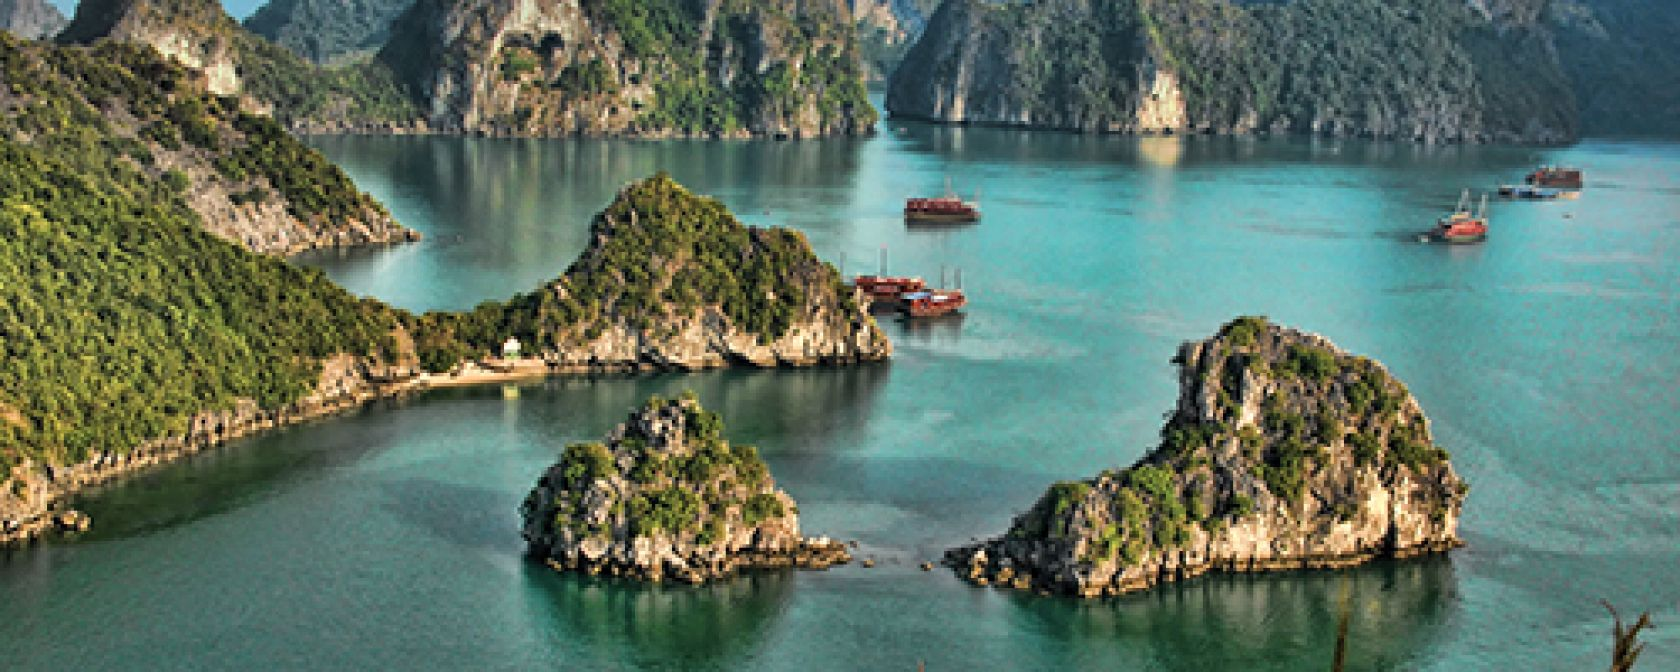 Speak to Our Experts about Your Perfect Mekong River Cruise